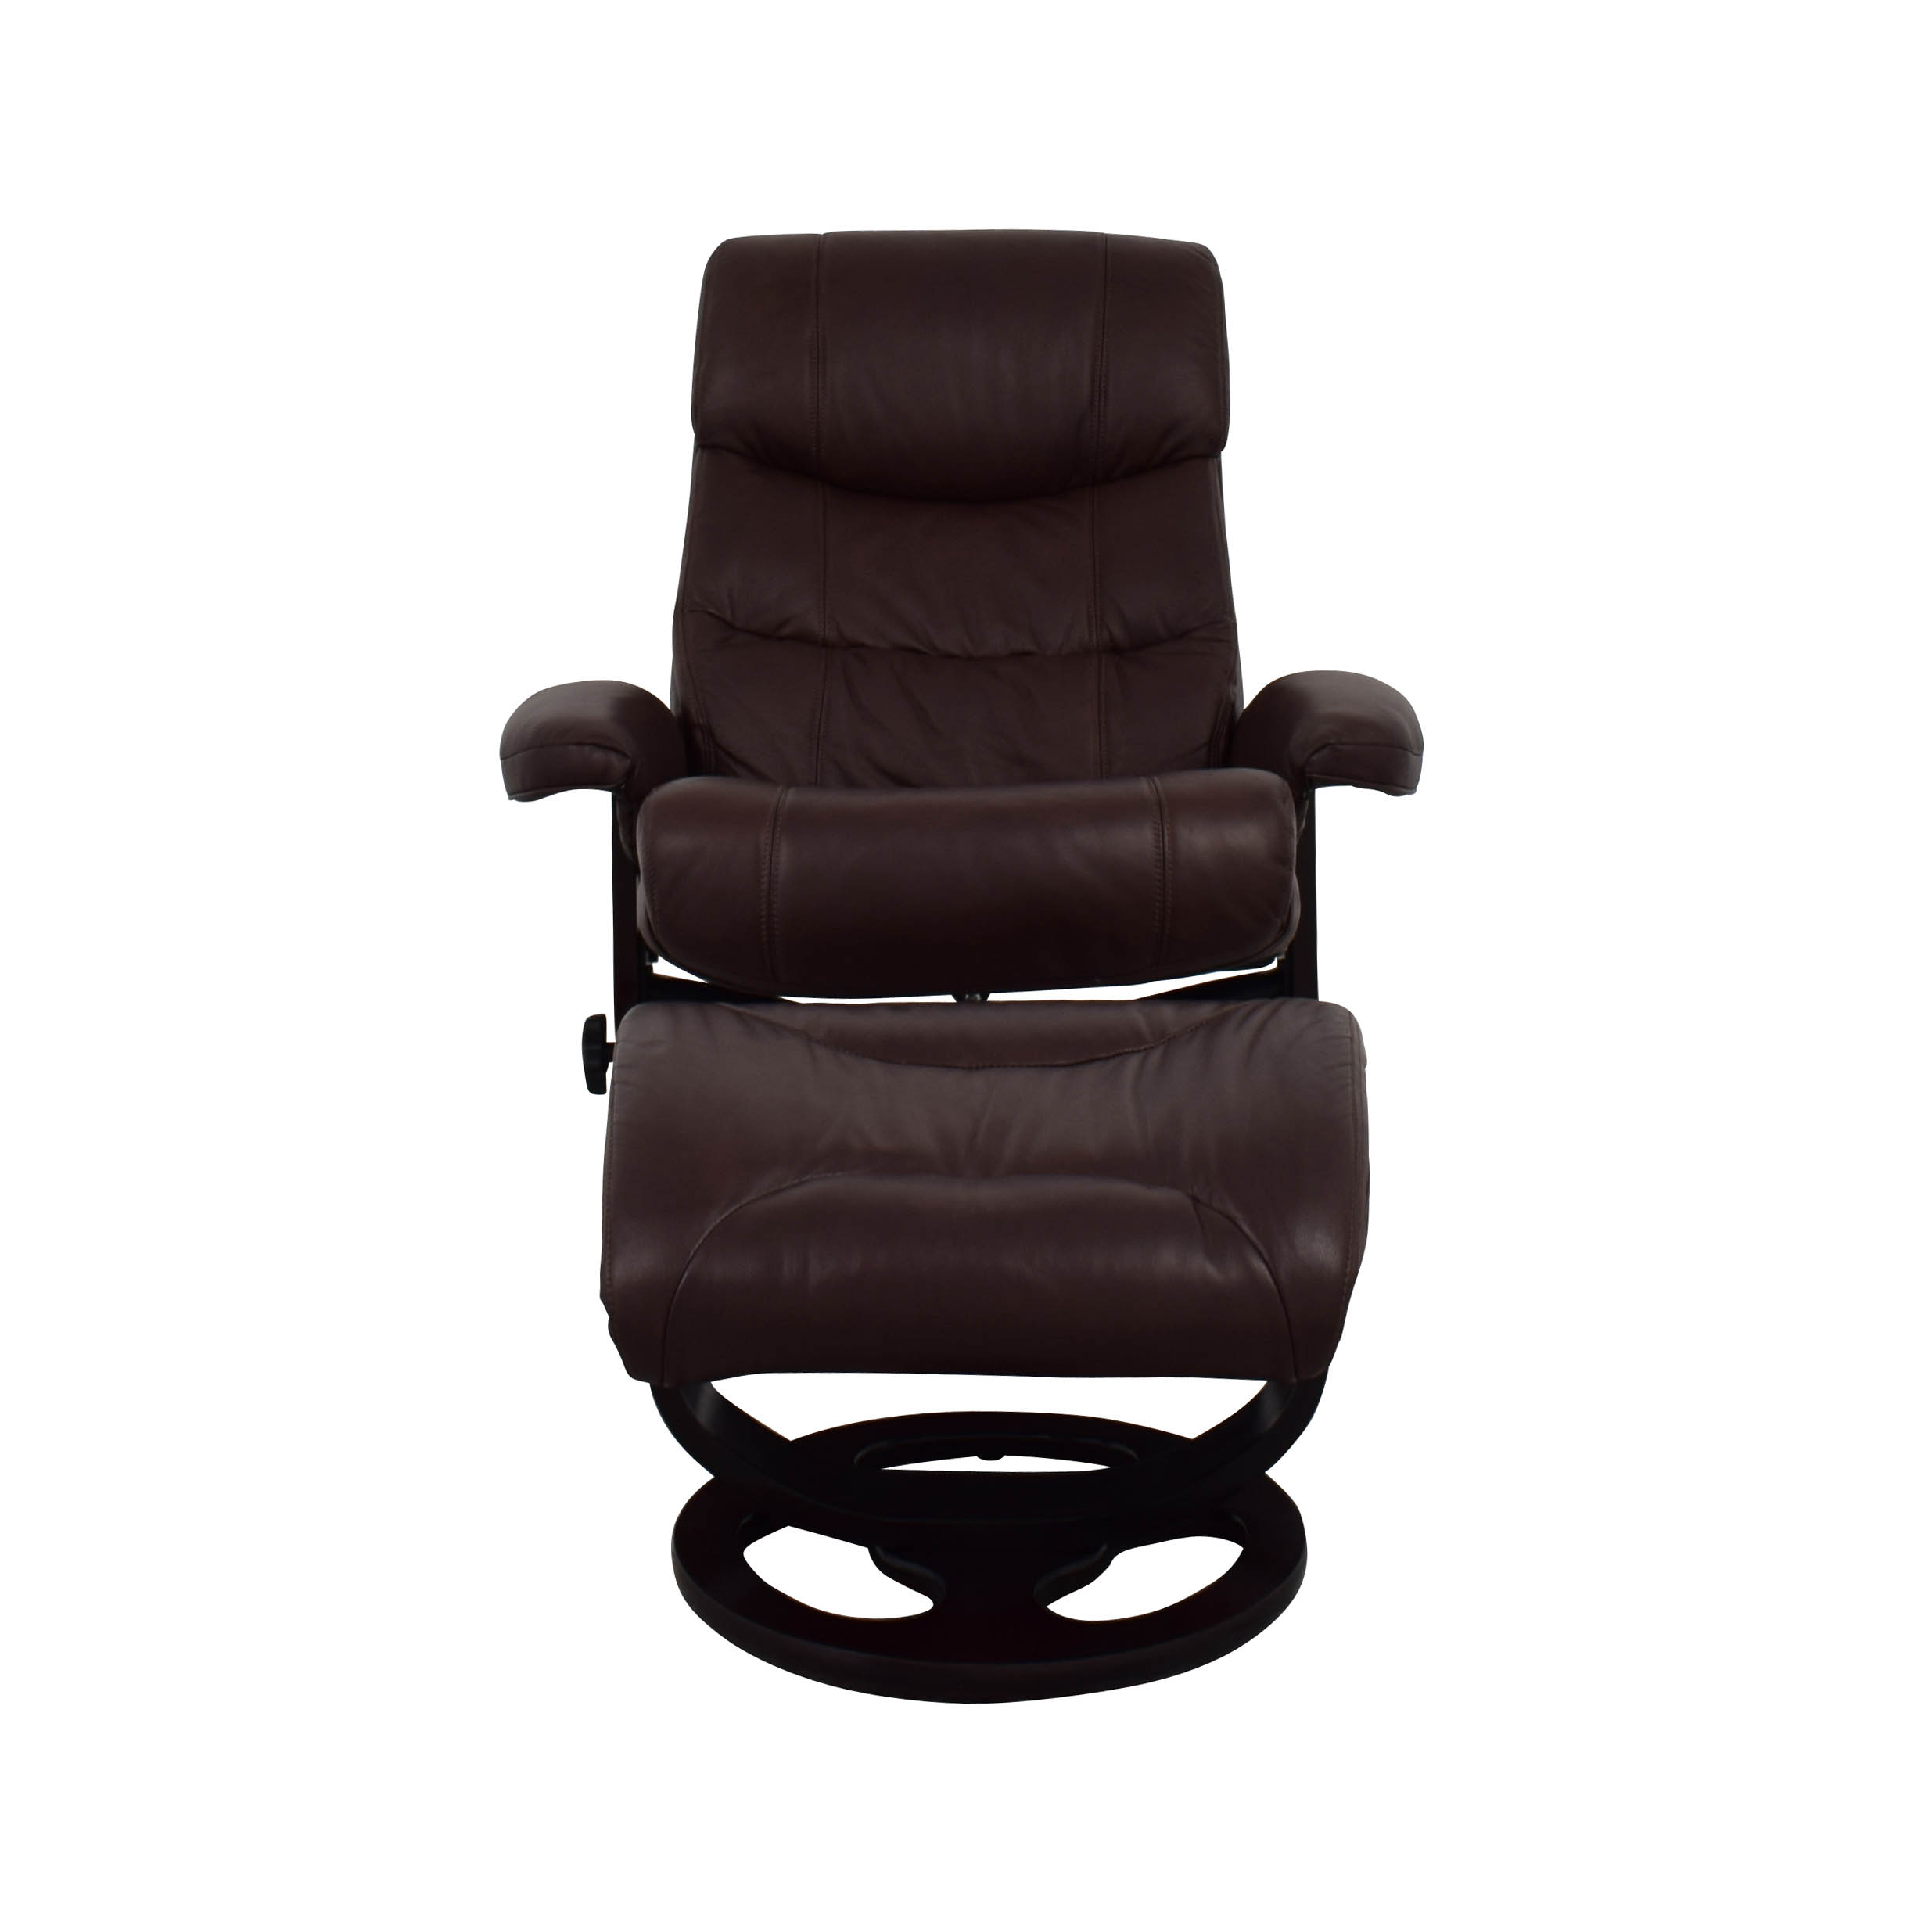 Macys Macys Aby Brown Leather Recliner Chair & Ottoman second hand